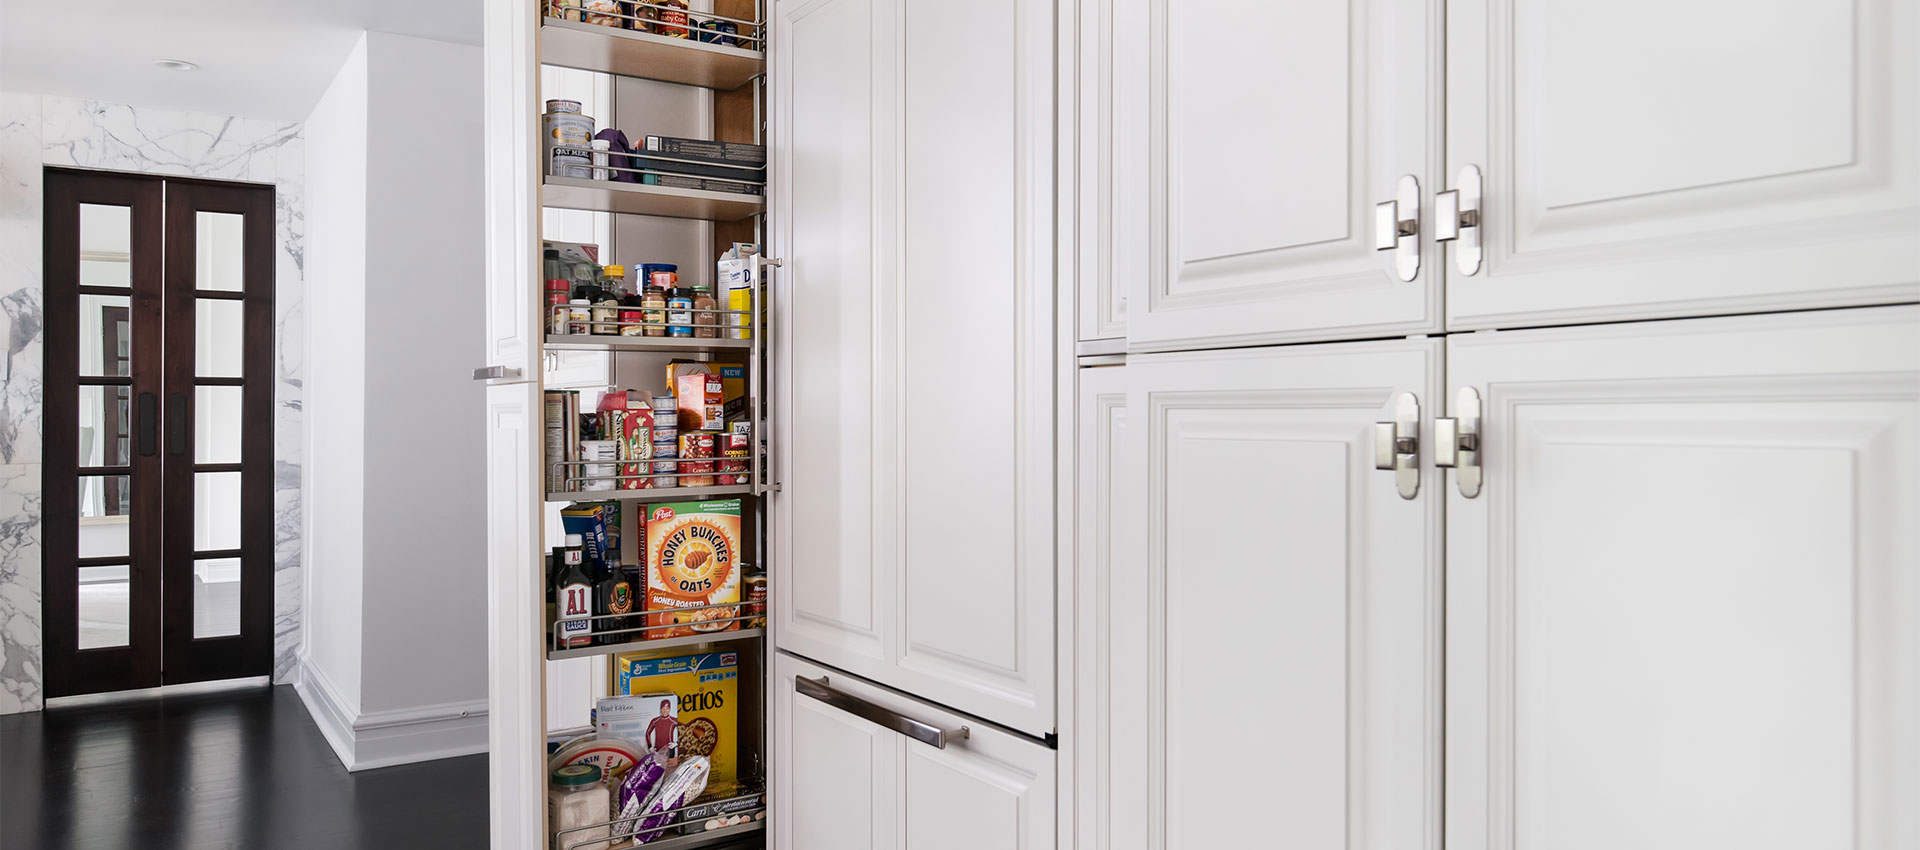 dresner-cabinetry-solutions